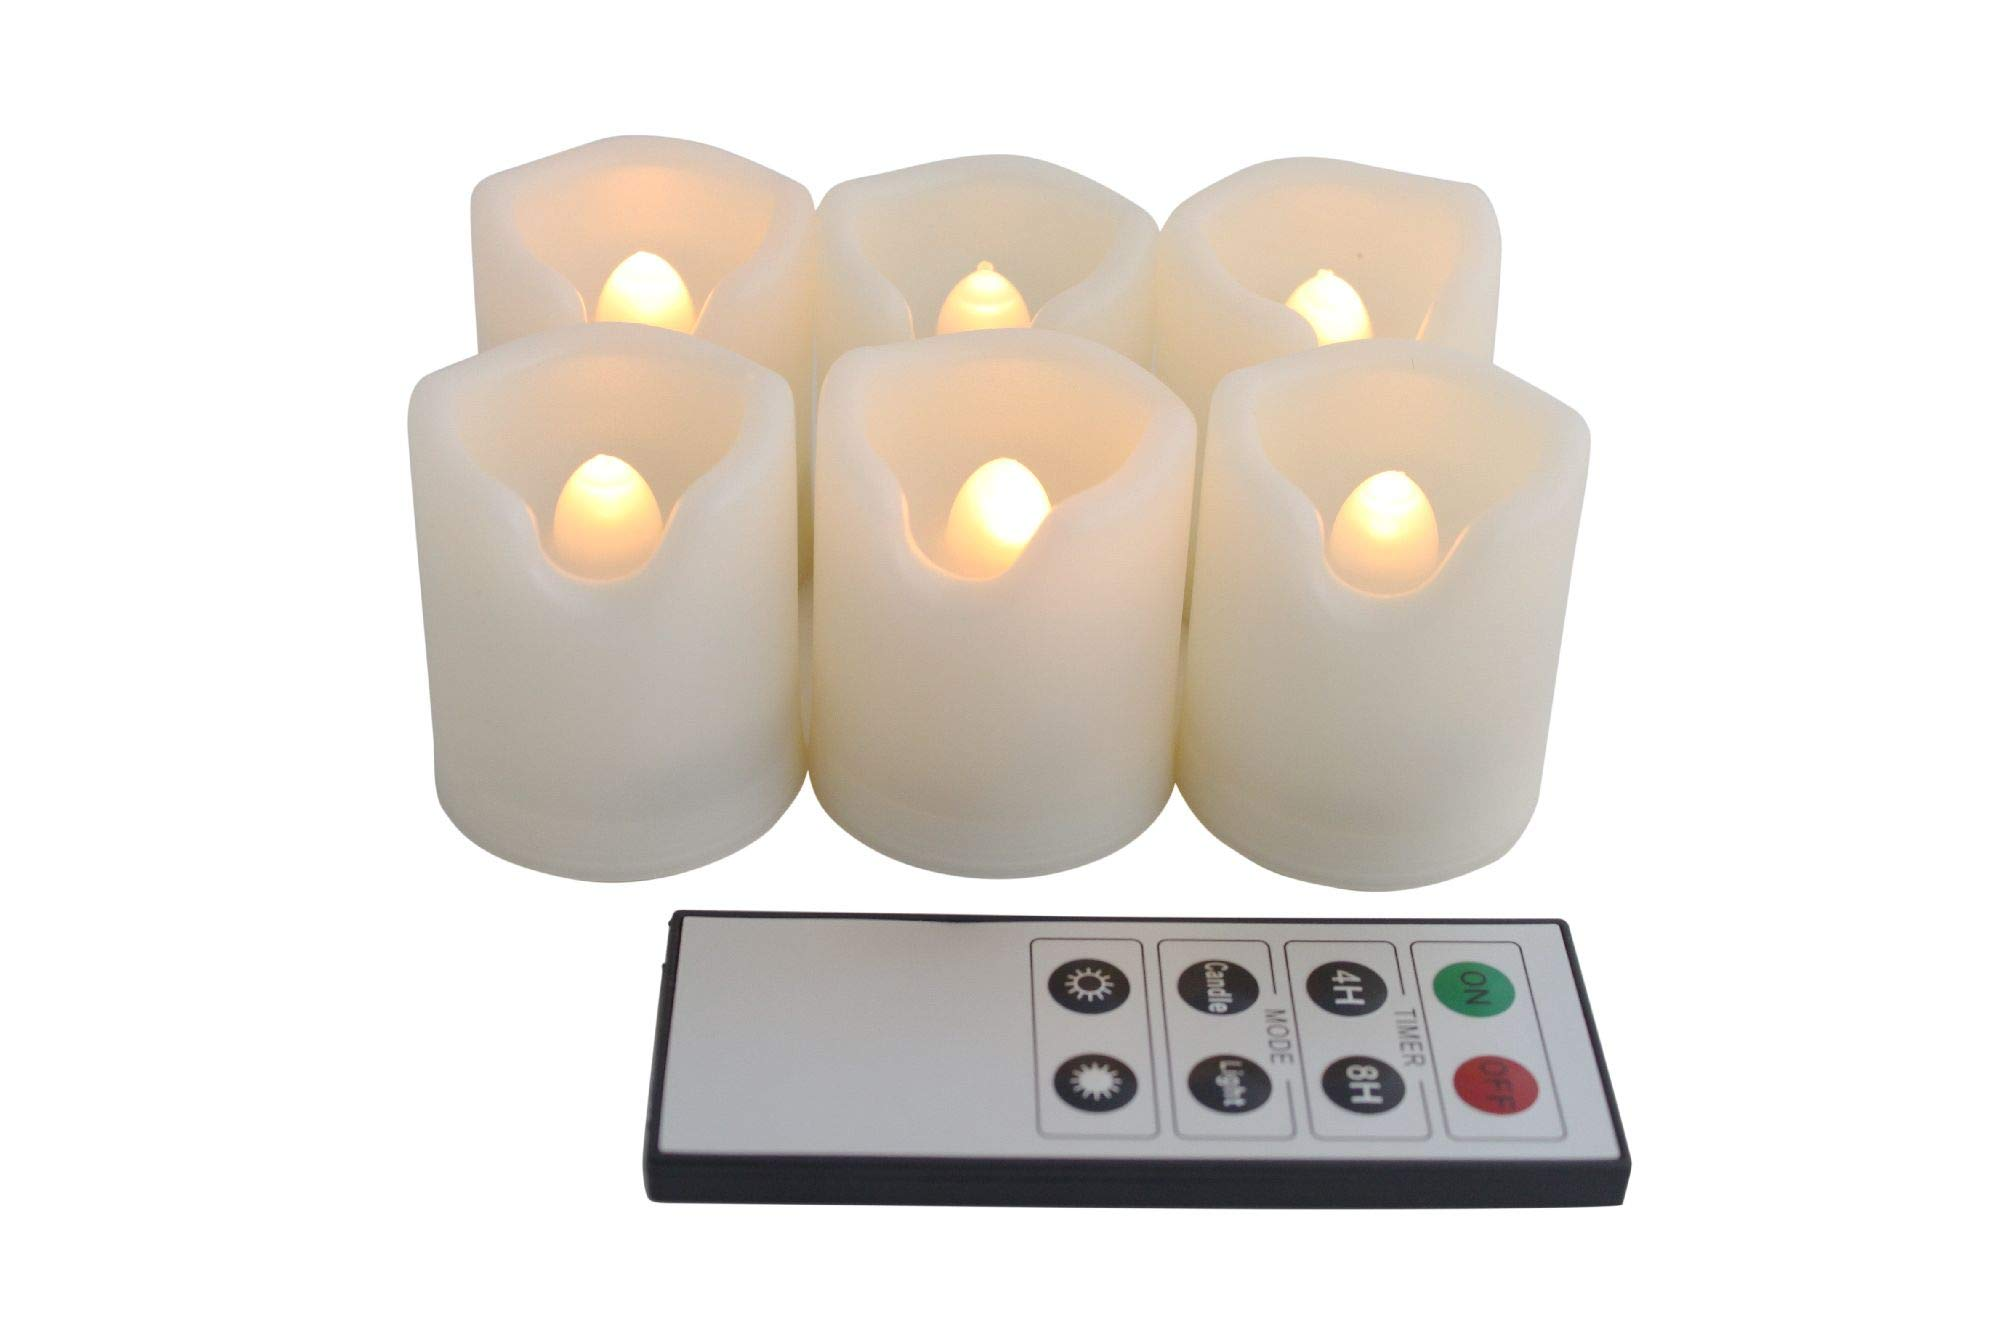 EcoGecko Remote Controlled Round Melted Edge Flameless LED Votive Candles, Set of 6